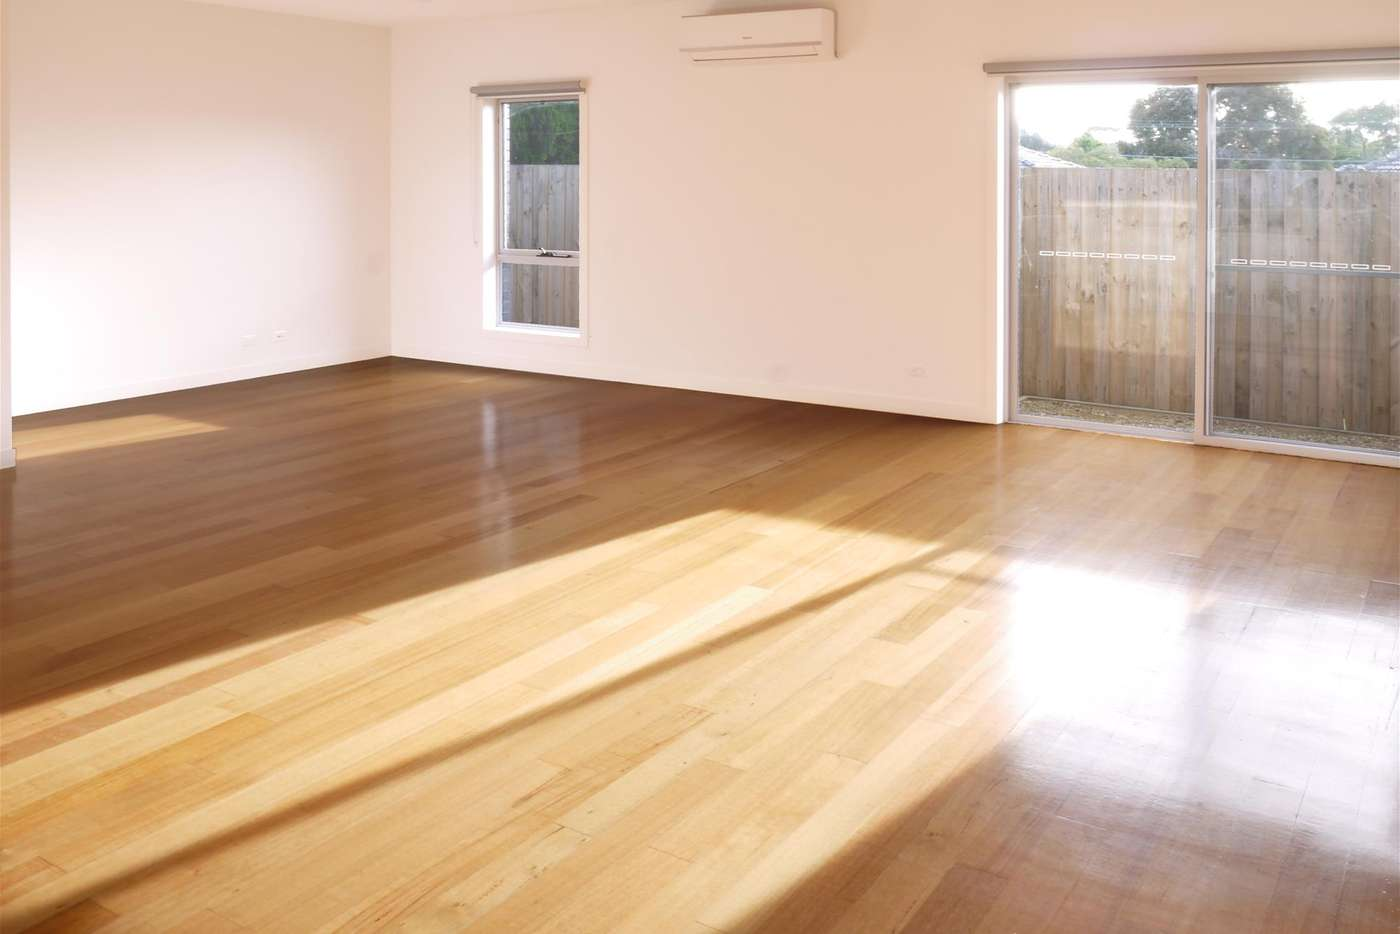 Main view of Homely unit listing, 6/68 Gowrie Street, Glenroy VIC 3046